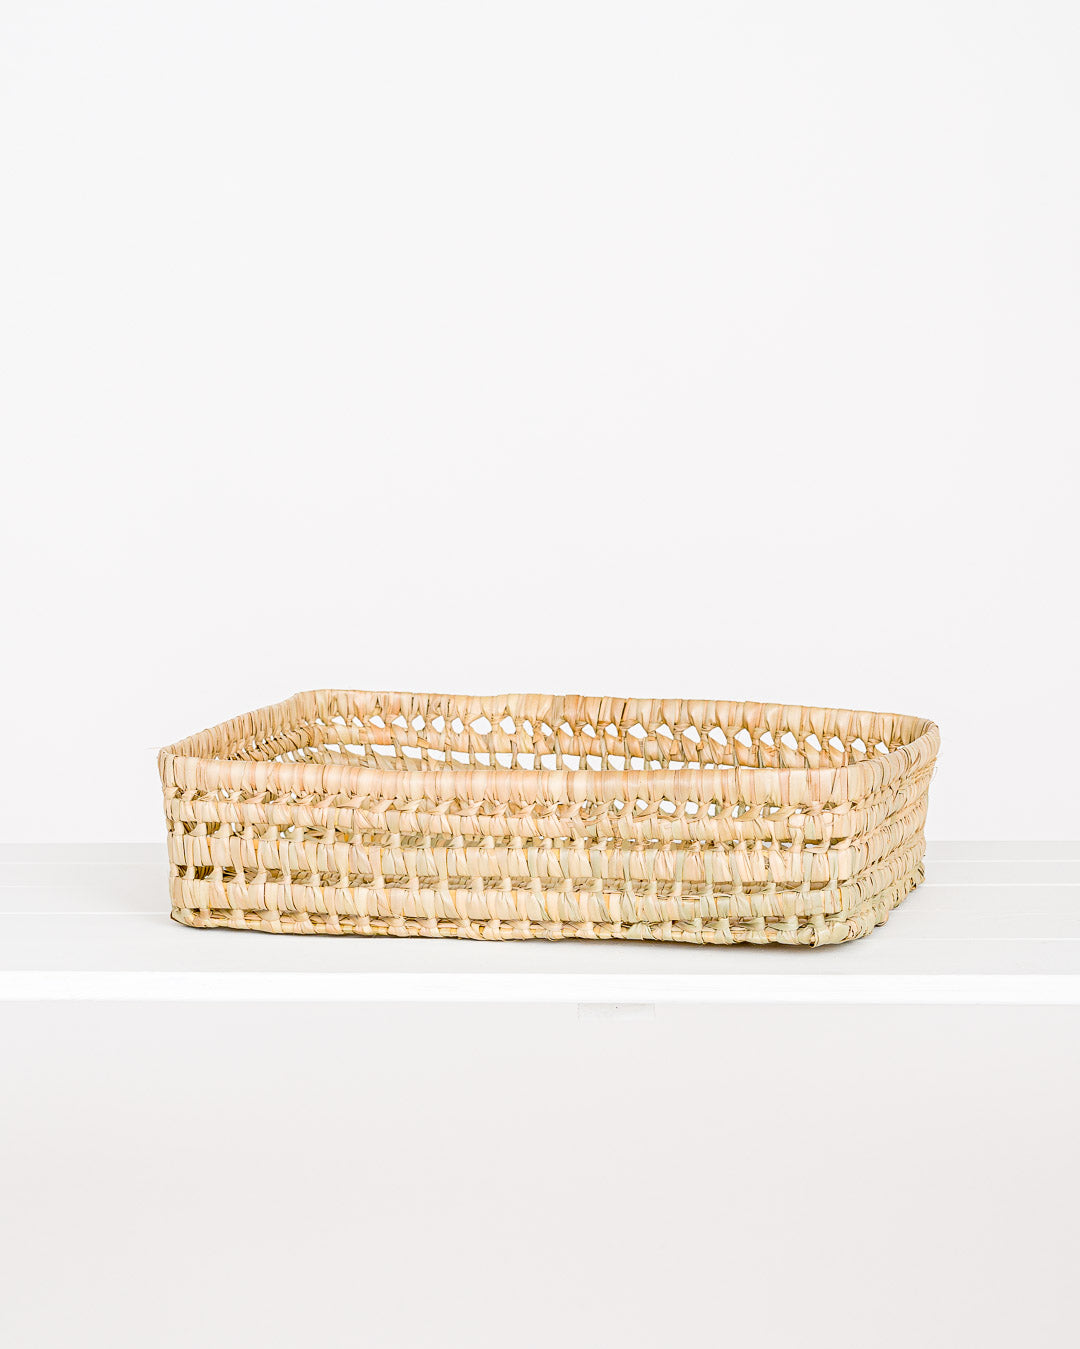 Tine K Home // Korb Storage Tray Basket Large